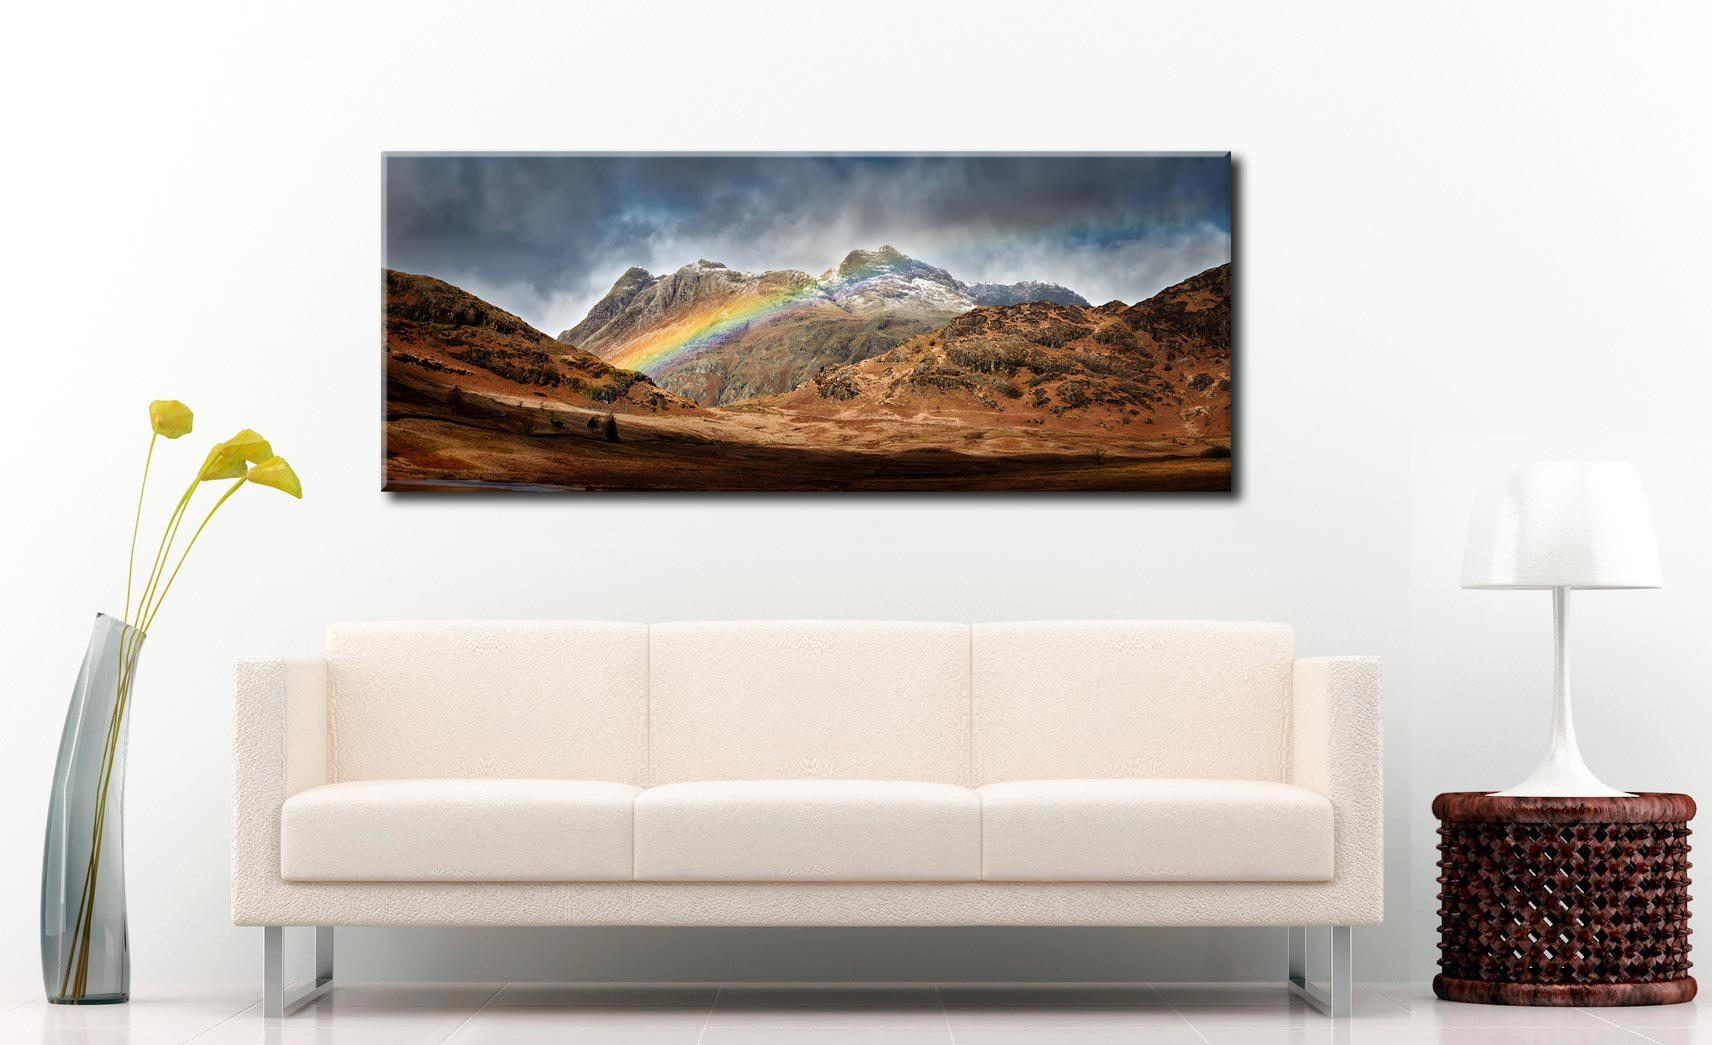 Langdale Pikes Rainbow - Canvas Print on Wall